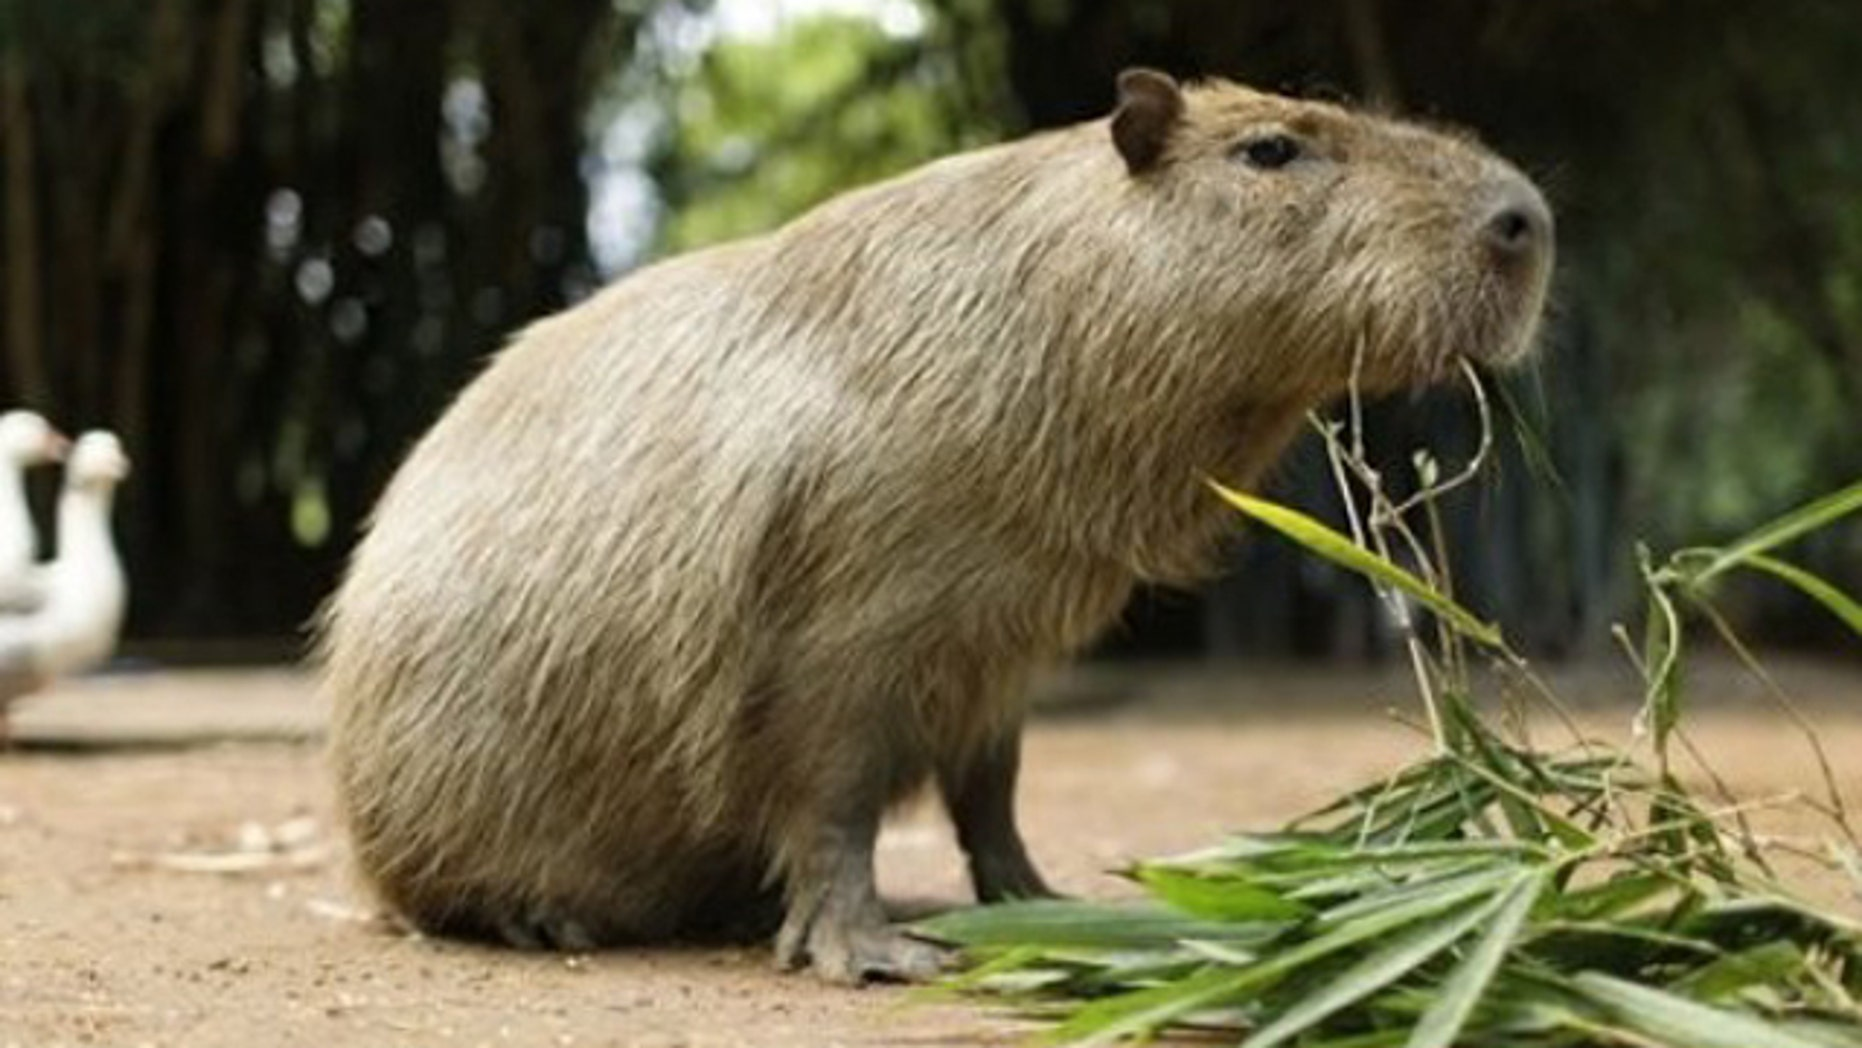 A capybara, also known as Carpincho in Spanish, eats a plant at the zoo in Asuncion, Paraguay, Friday Feb. 18, 2011. The capybara, Hydrochoerus Hydrochaeris, is a semi-aquatic rodent of South America.